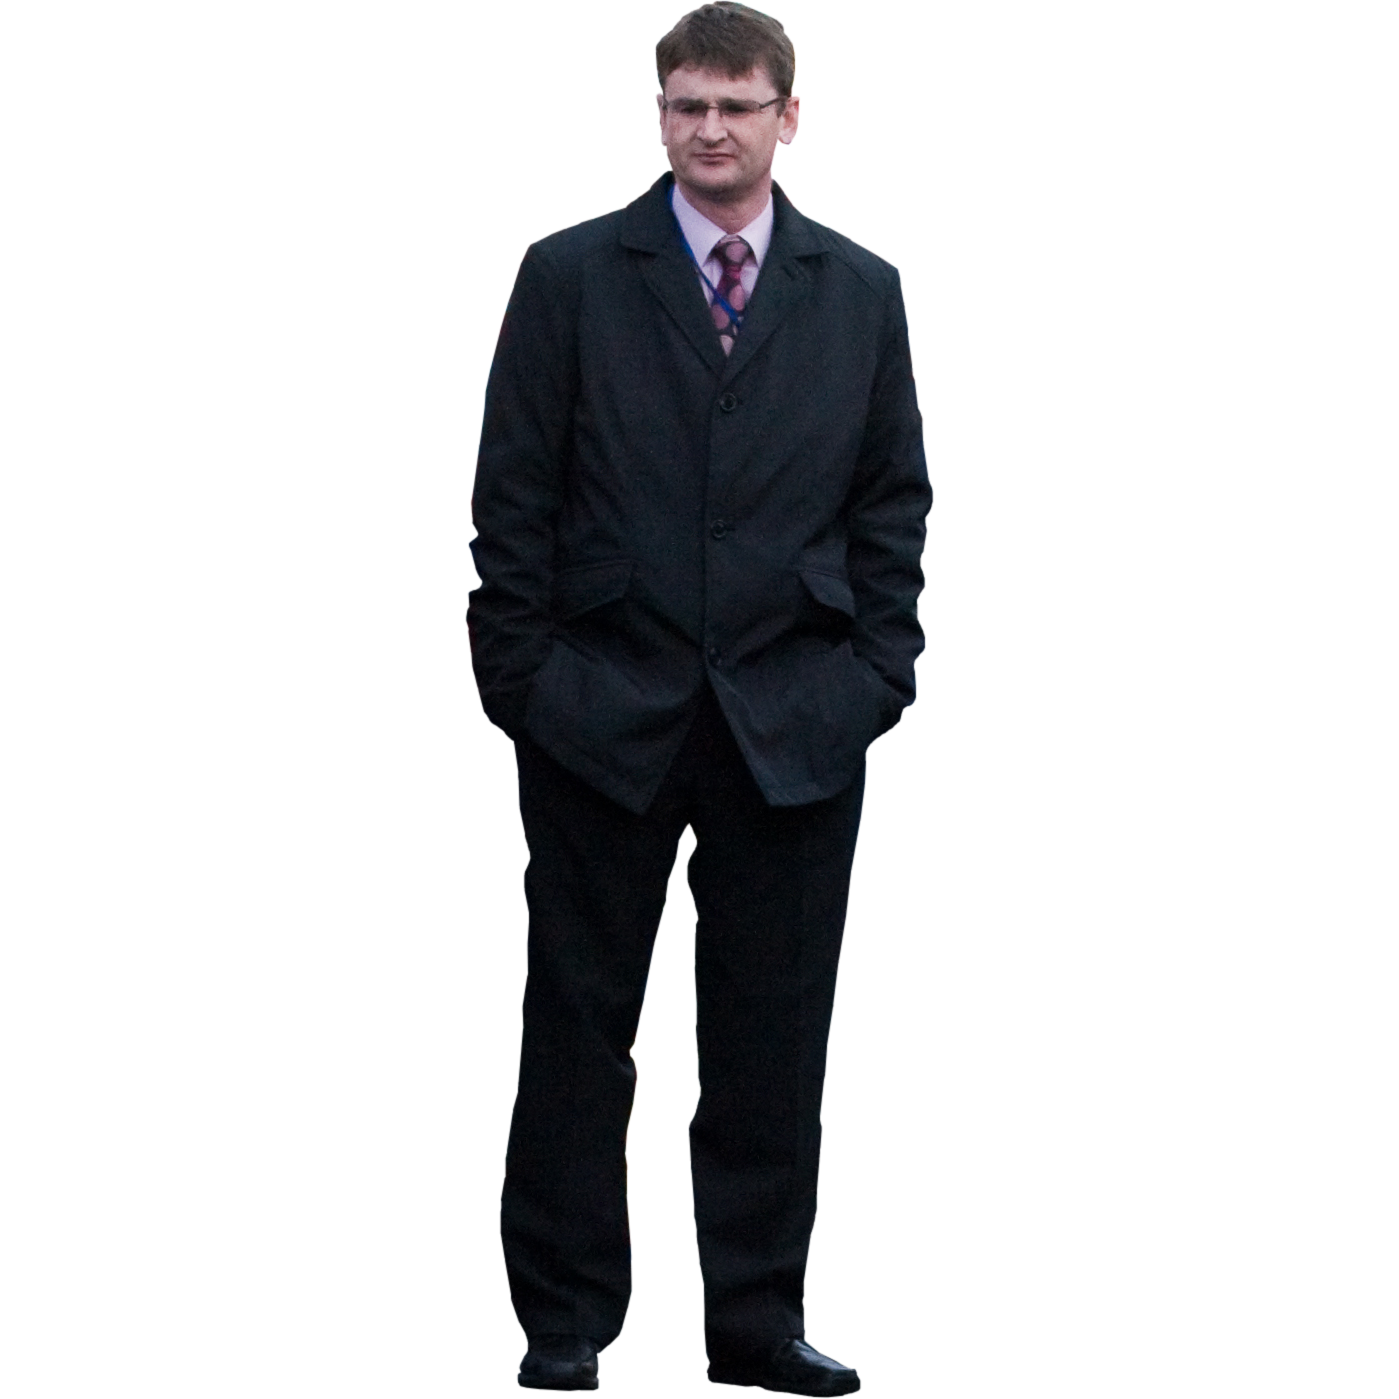 Man In Suit PNG image #9461